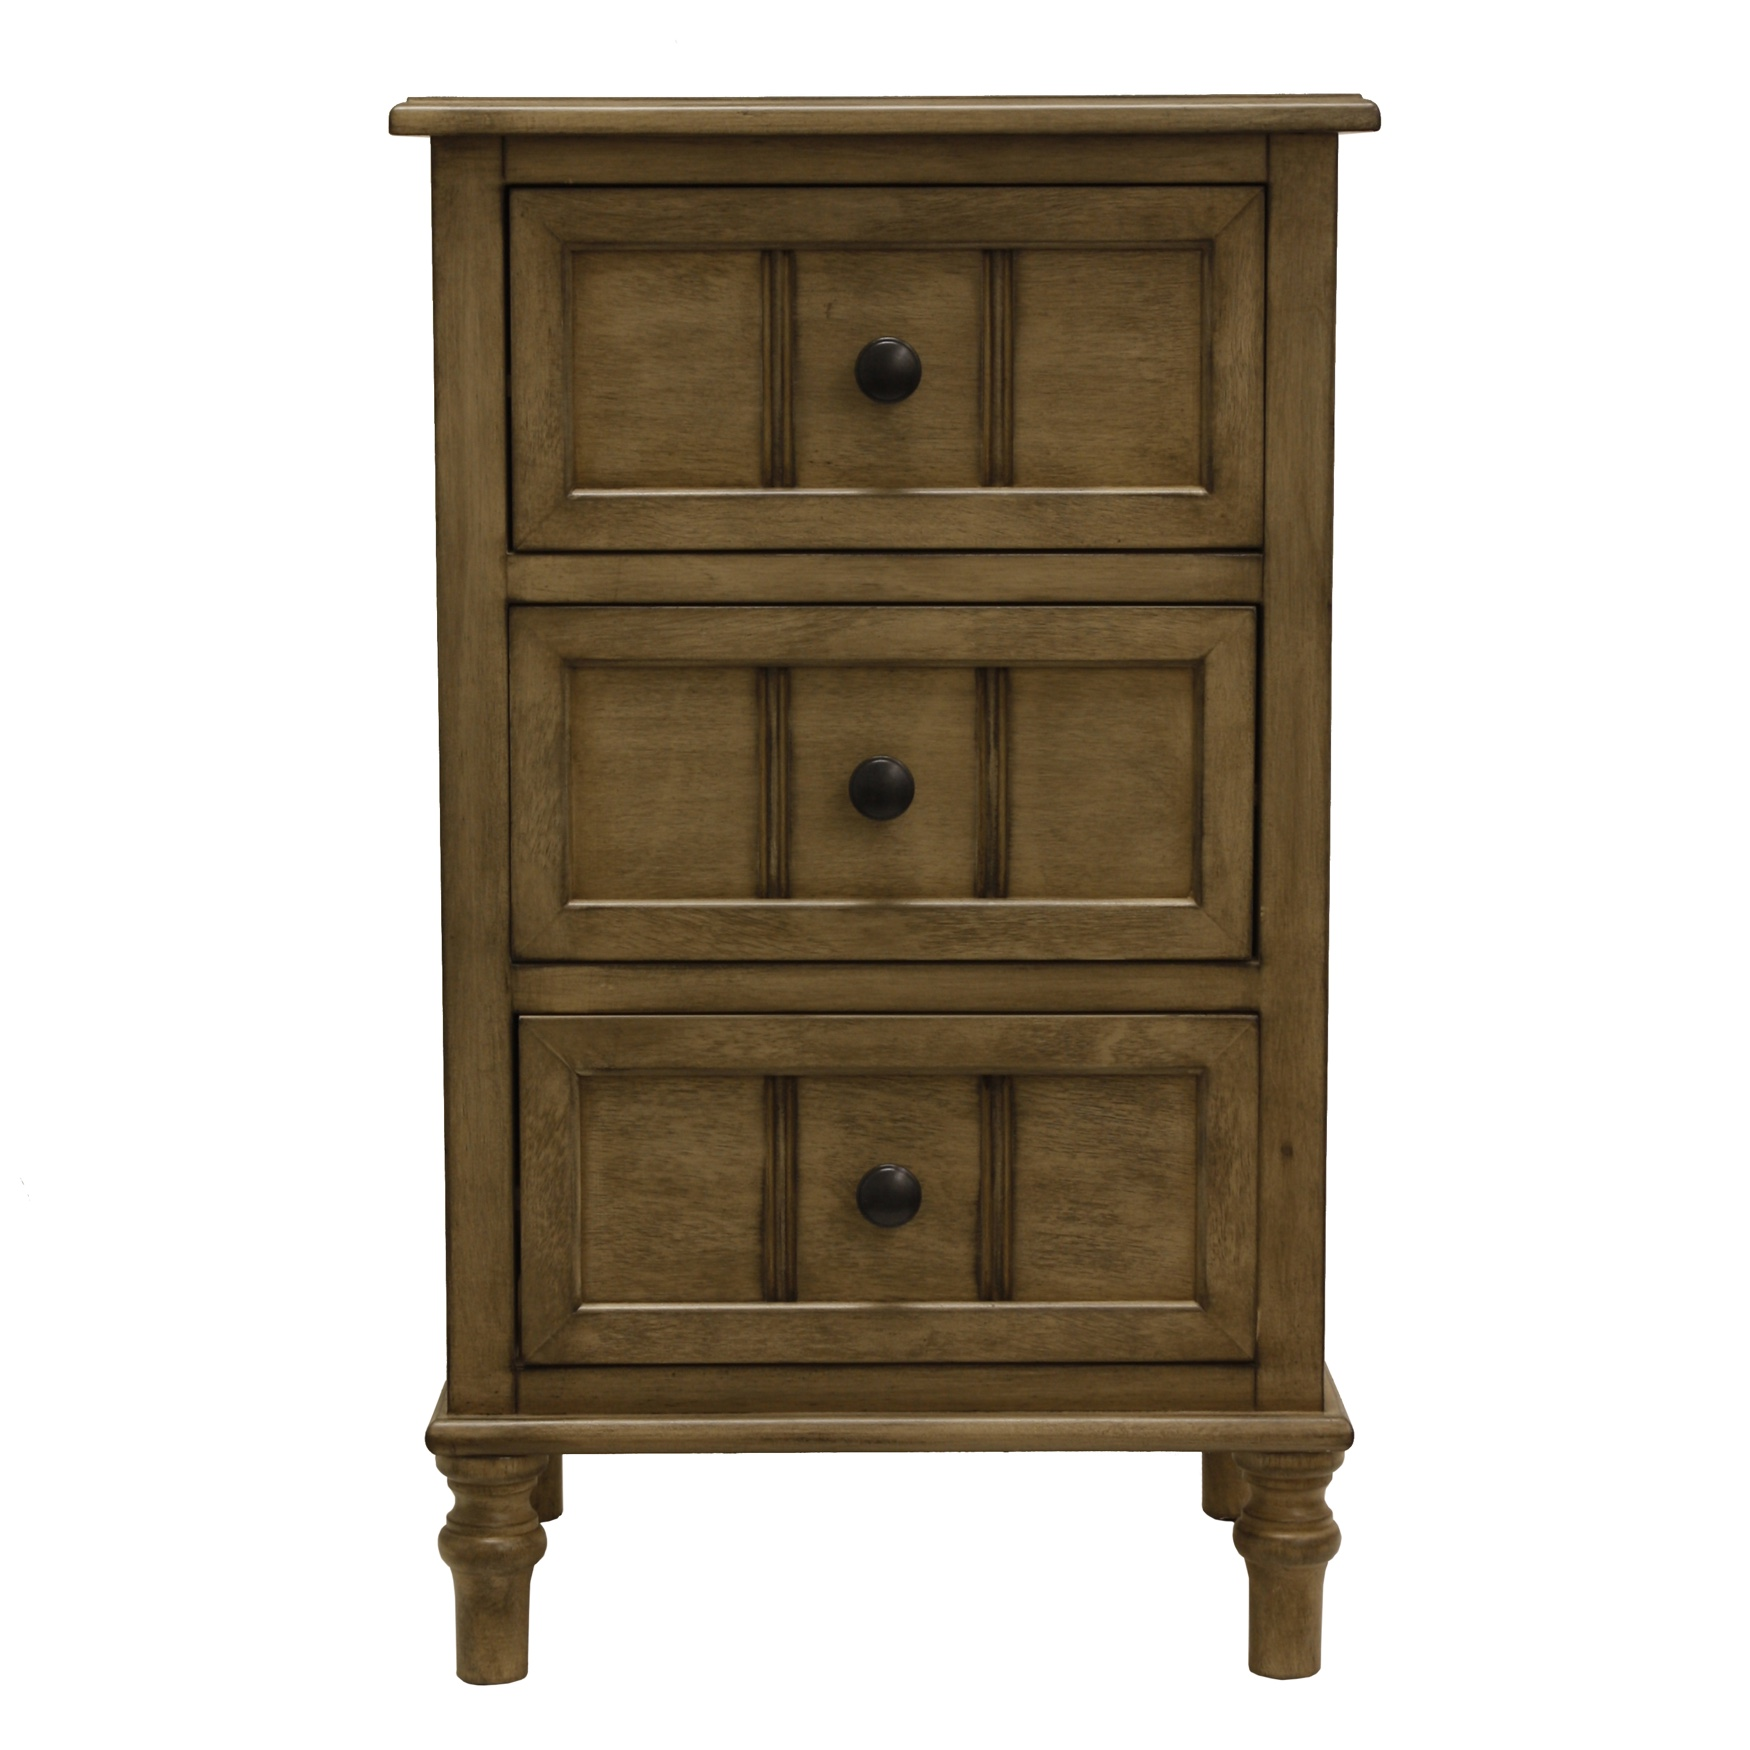 Sahara 3-Drawer Chest by J. Hunt, SAHARA